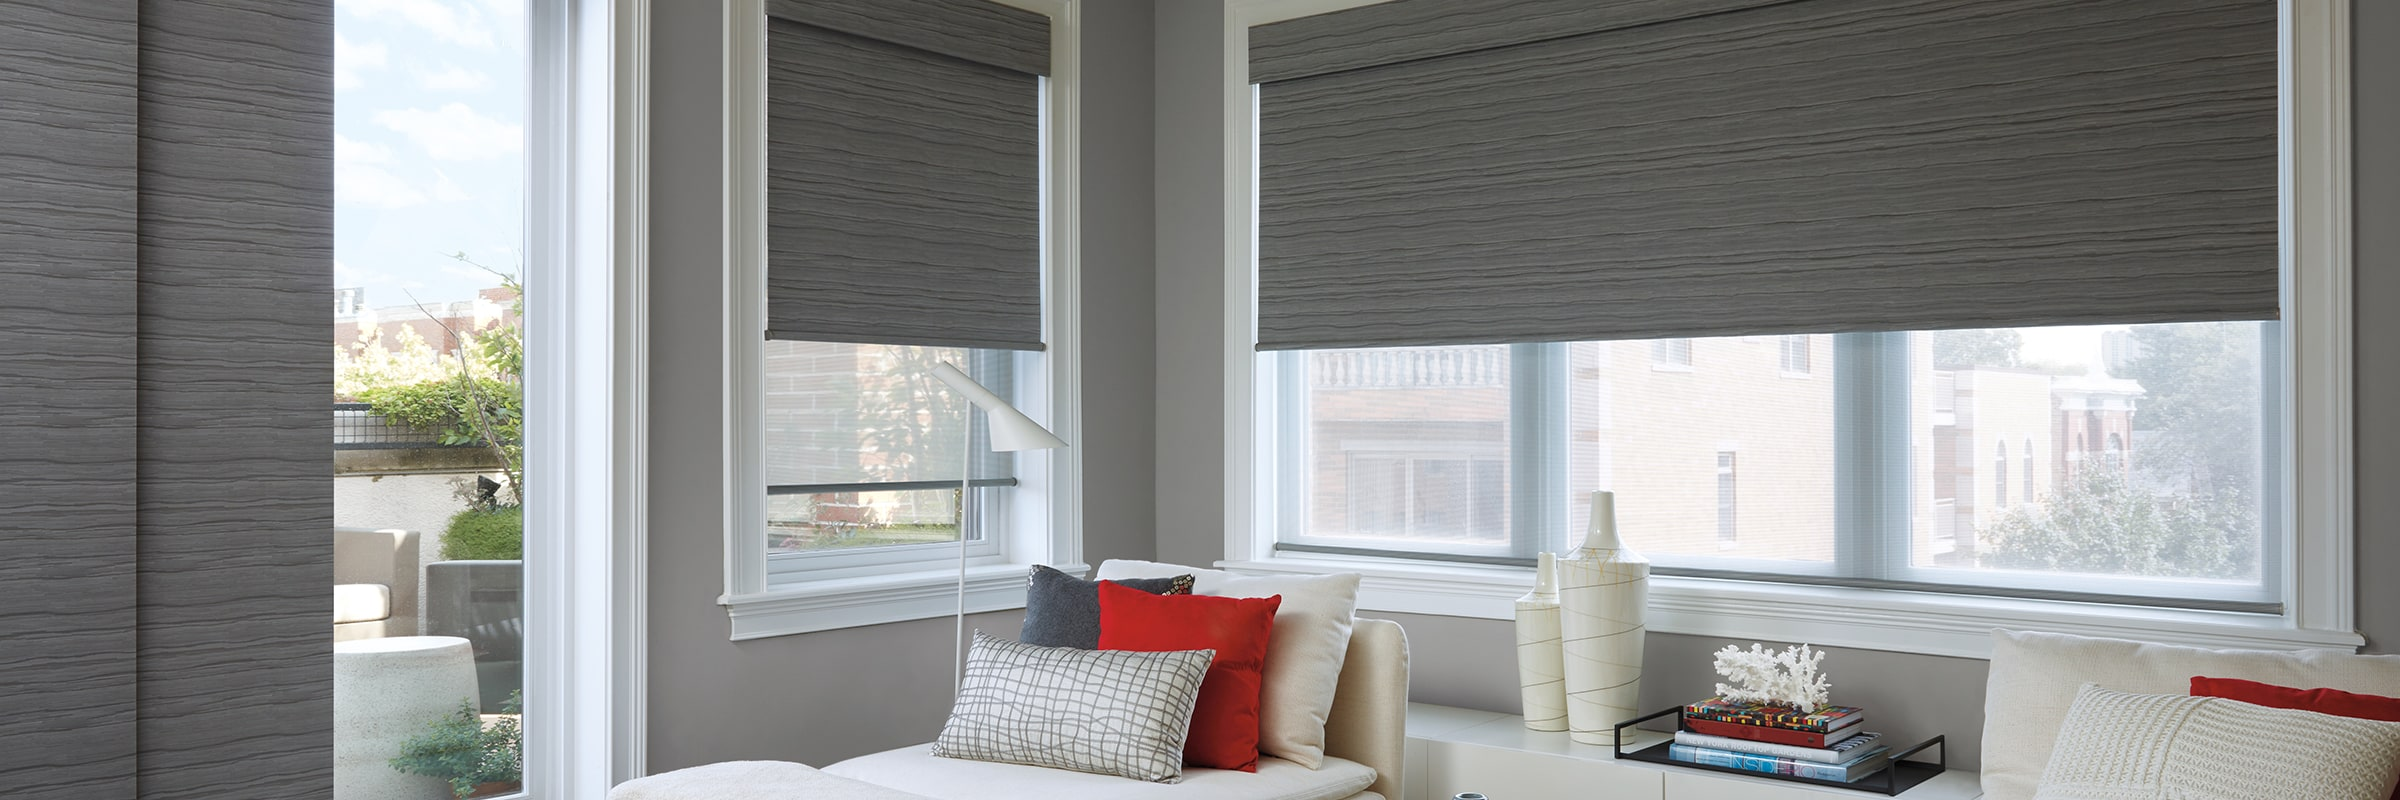 Read Design Window Fashions Designer Roller Shades